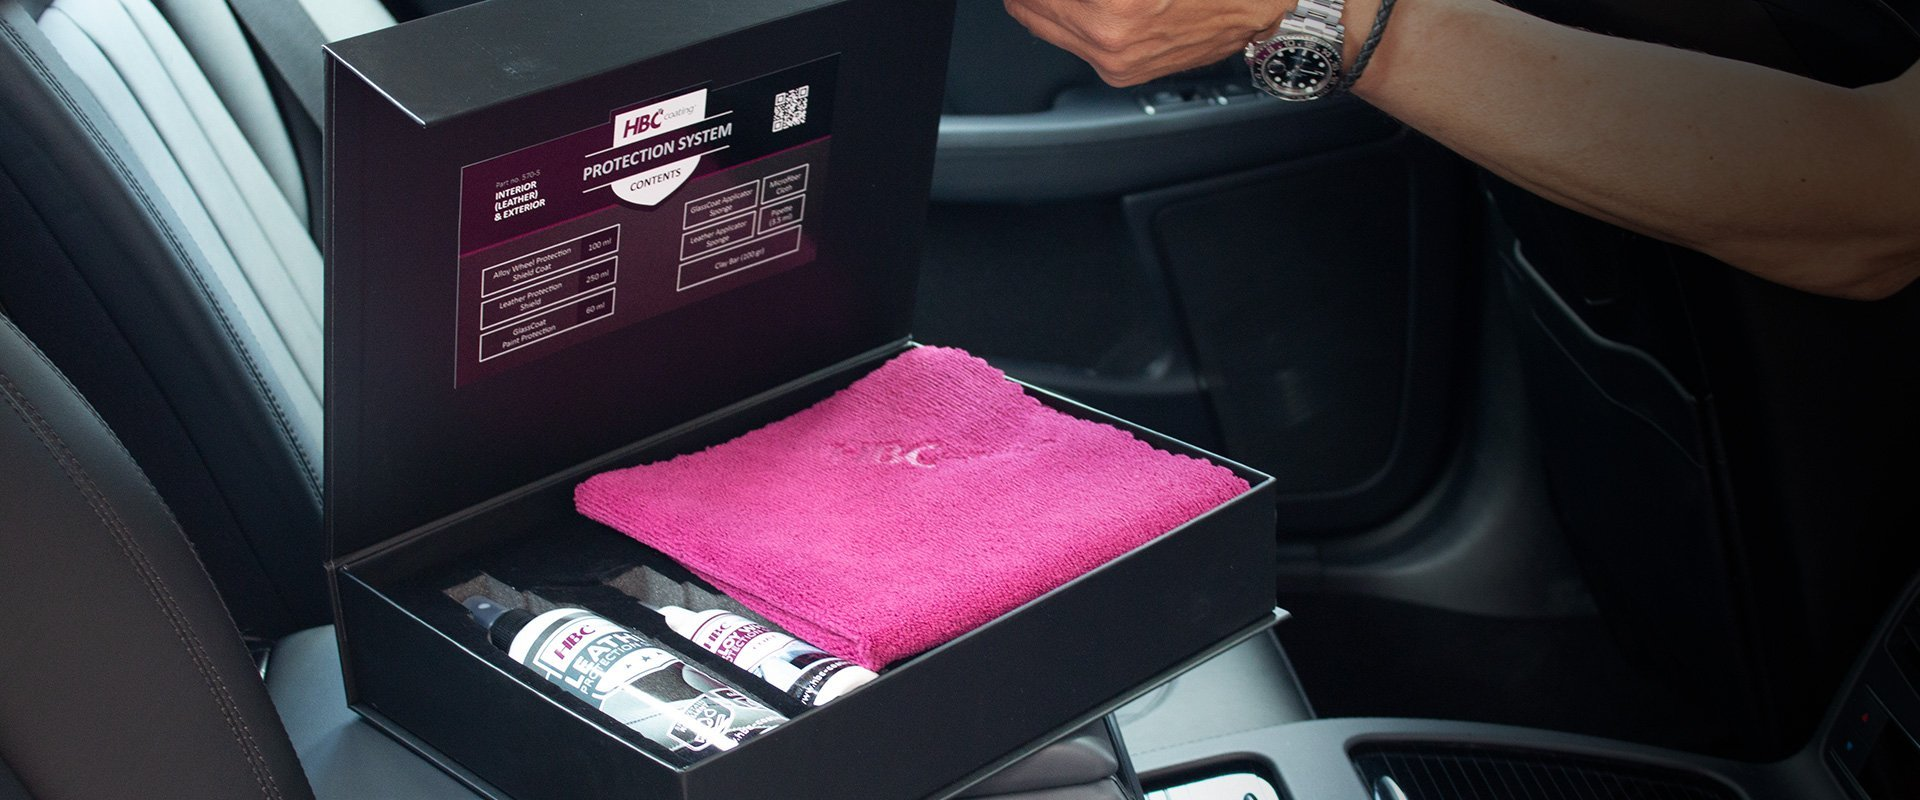 Protection-System-Interior-Leather-and-Exterior-Open